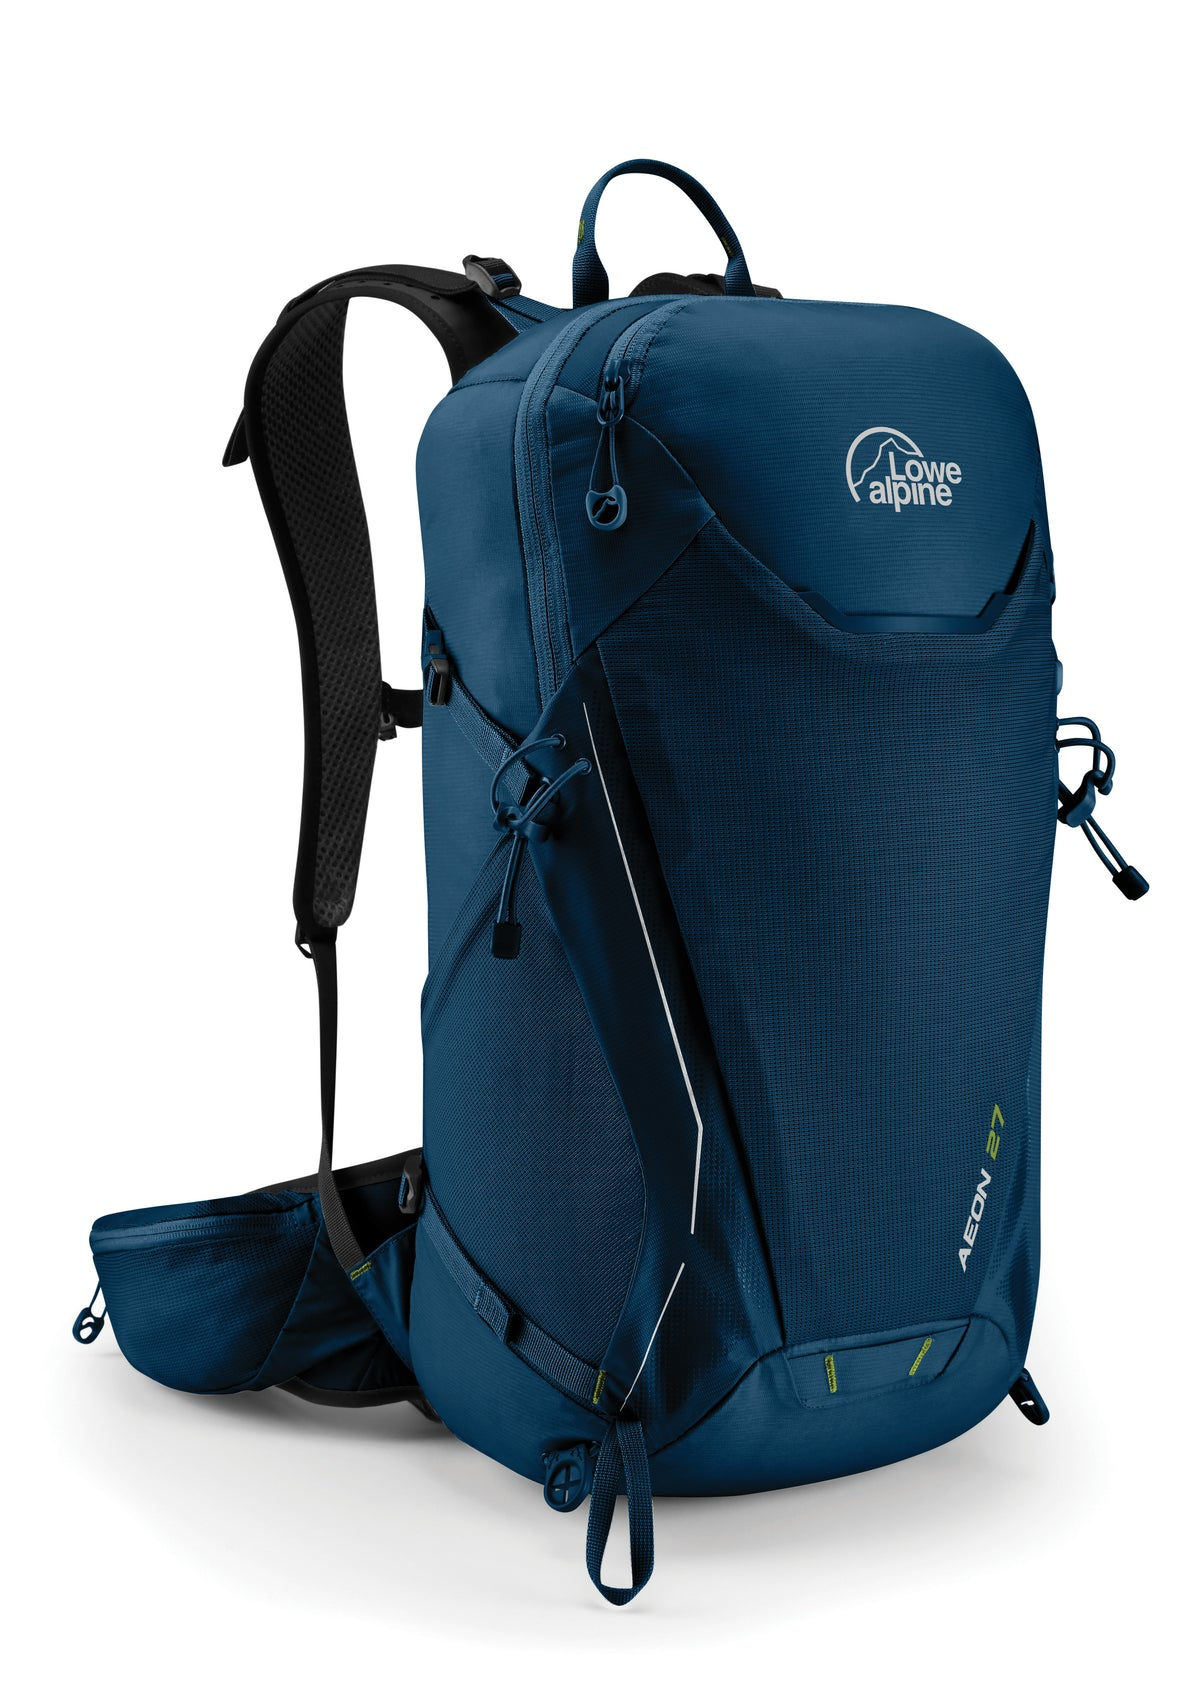 Lowe Alpine-Aeon 27-Backpacking Pack-Azure-Gearaholic.com.sg